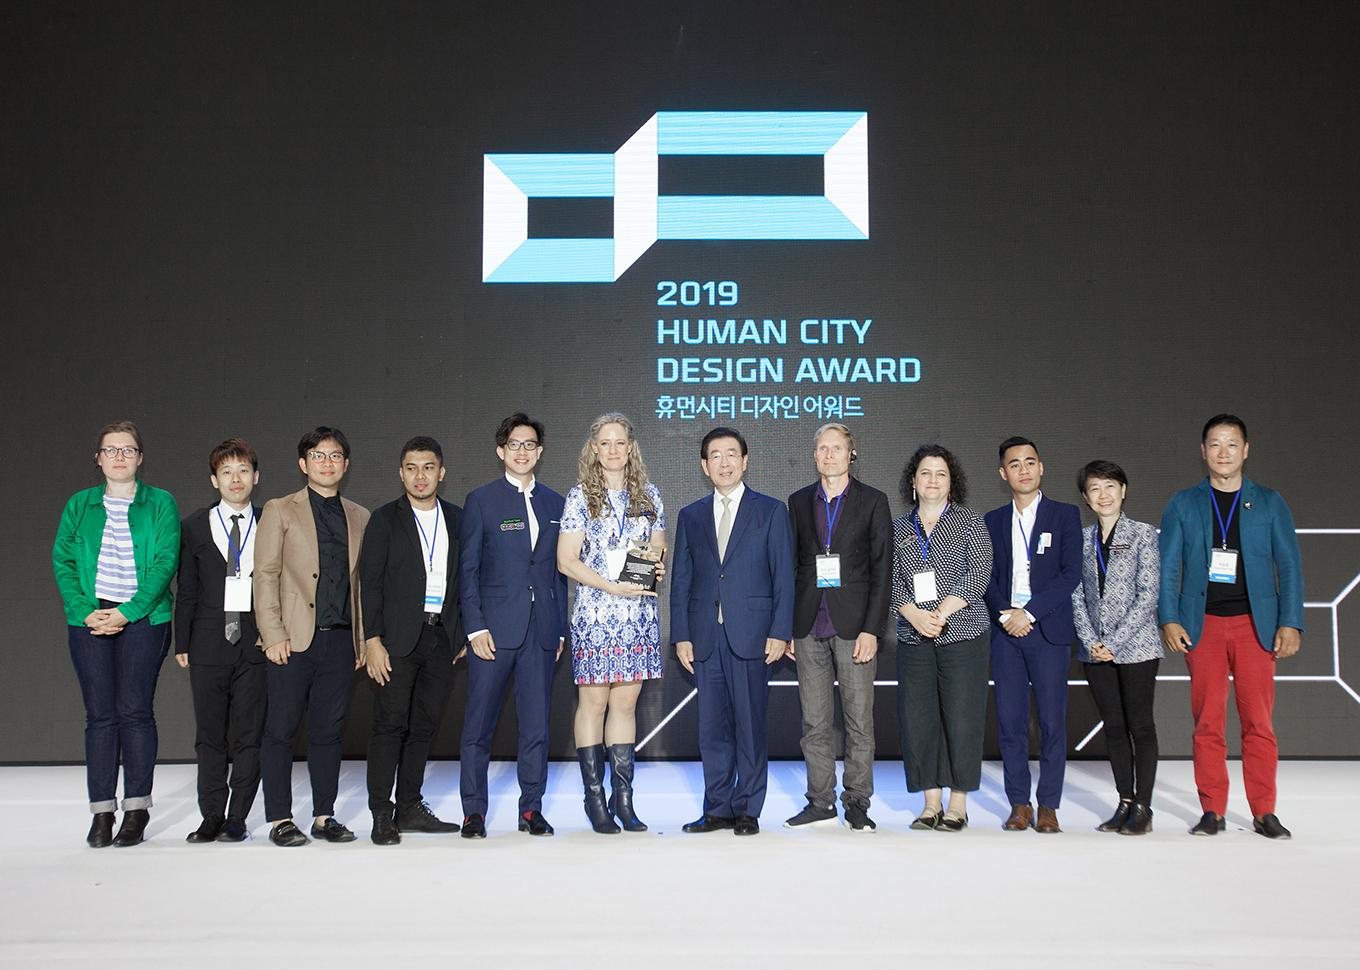 Human city design award nominee